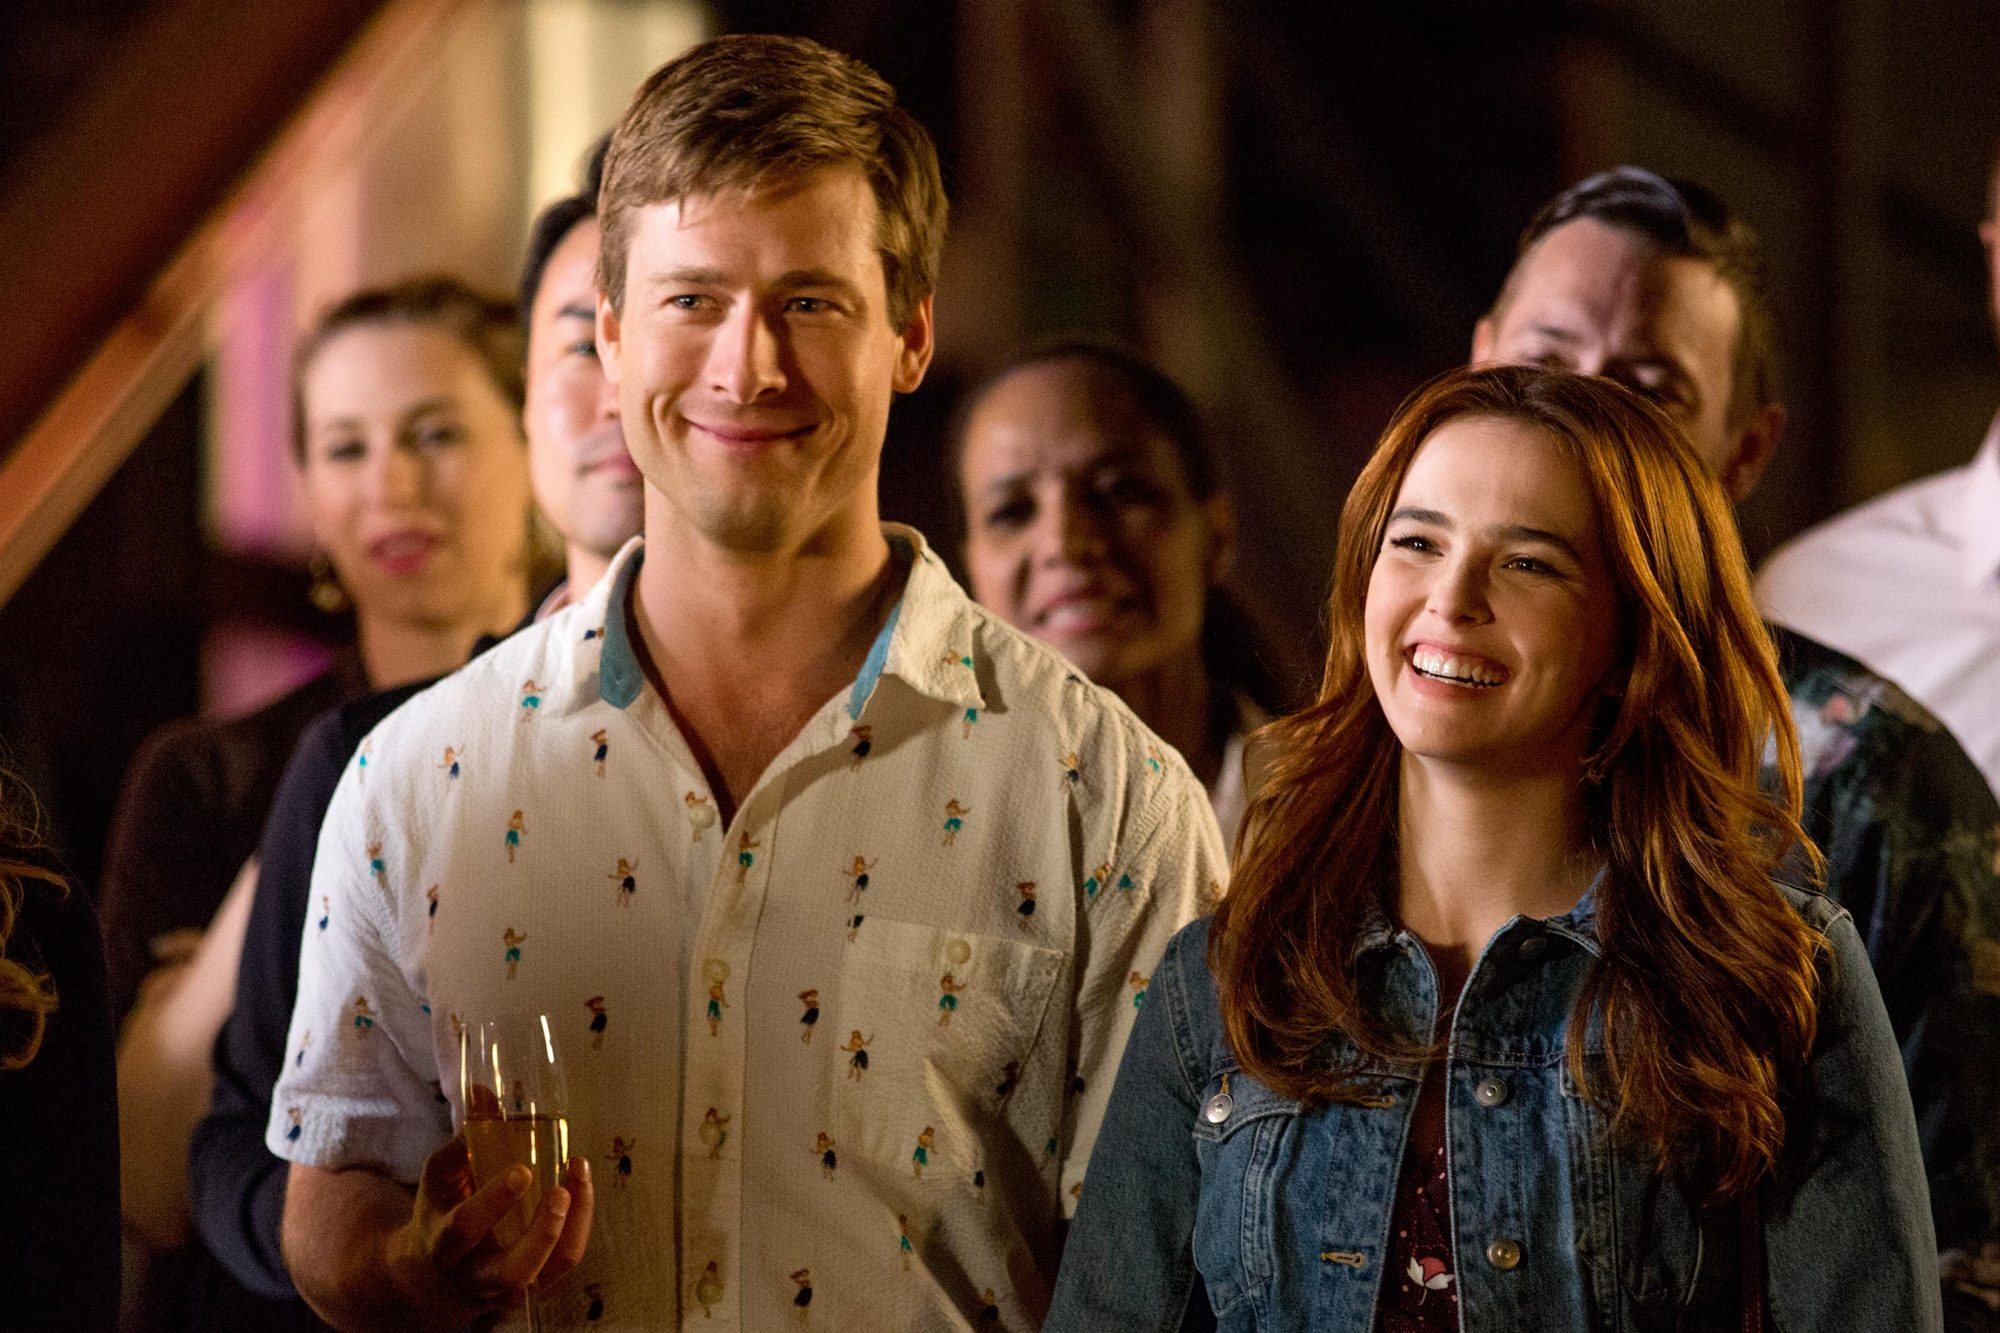 Set It UpPICTUREDGlen Powell, Zoey DeutchCREDITKC Baily/Netflix